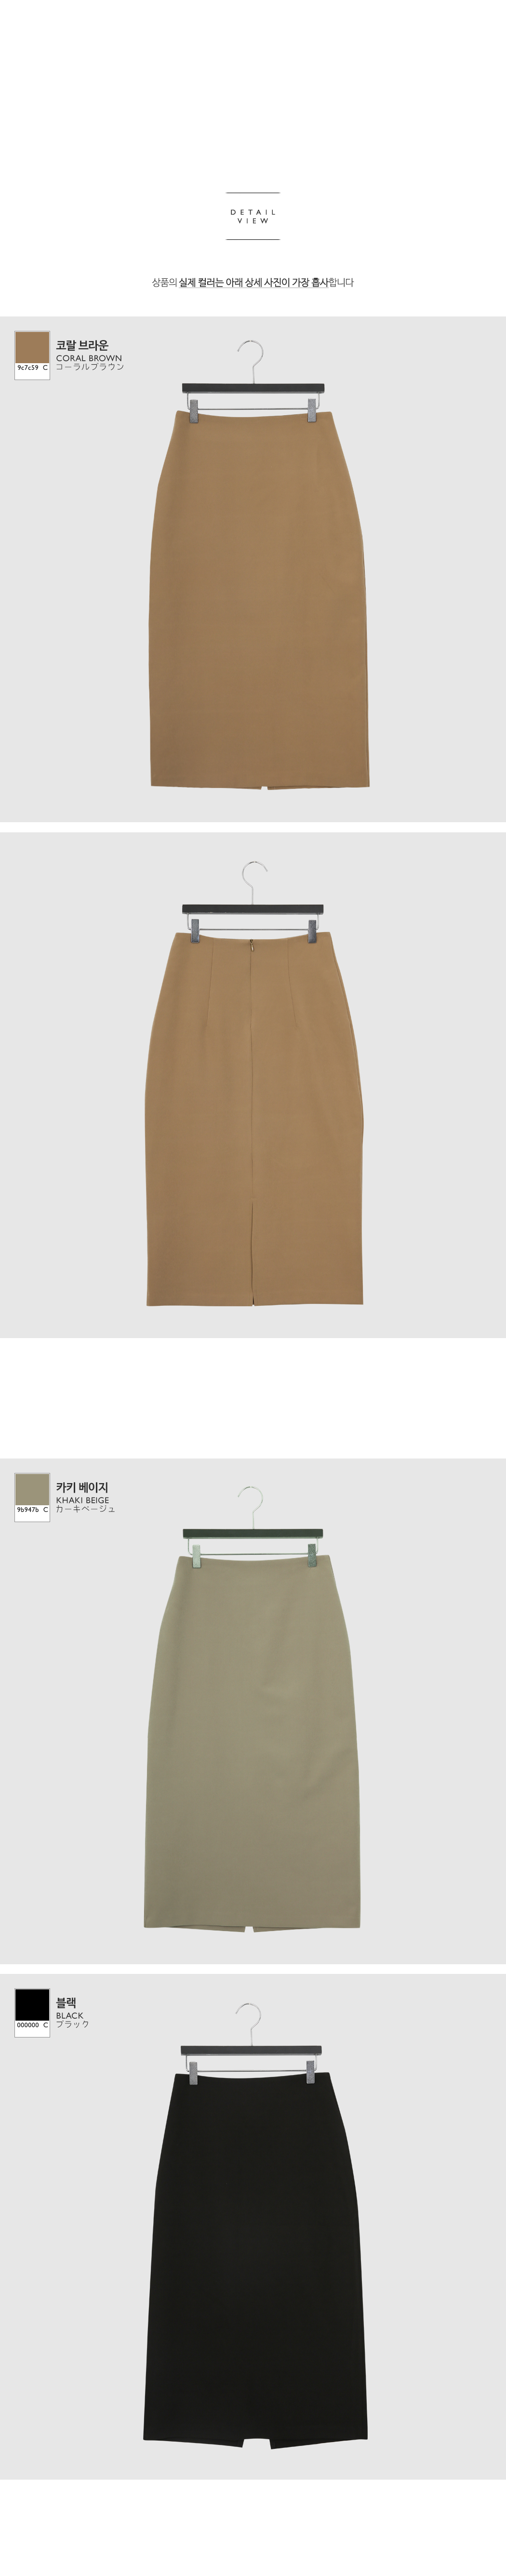 House Slit Skirt